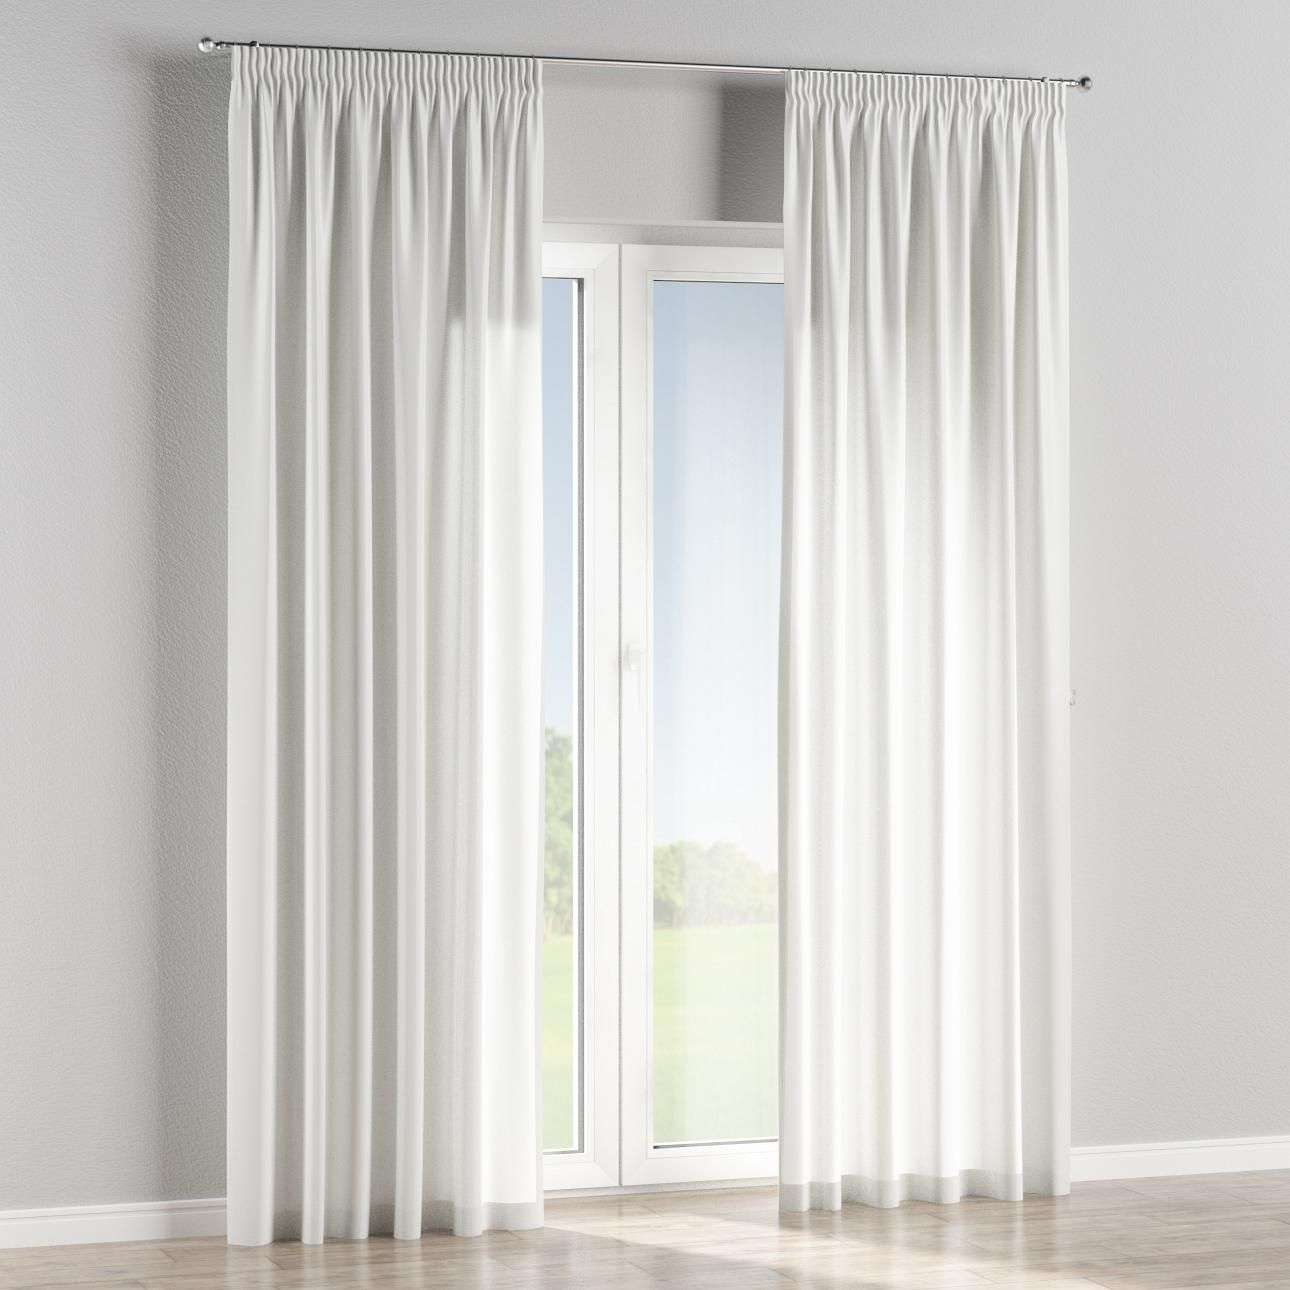 Pencil pleat curtains in collection SALE, fabric: 126-48